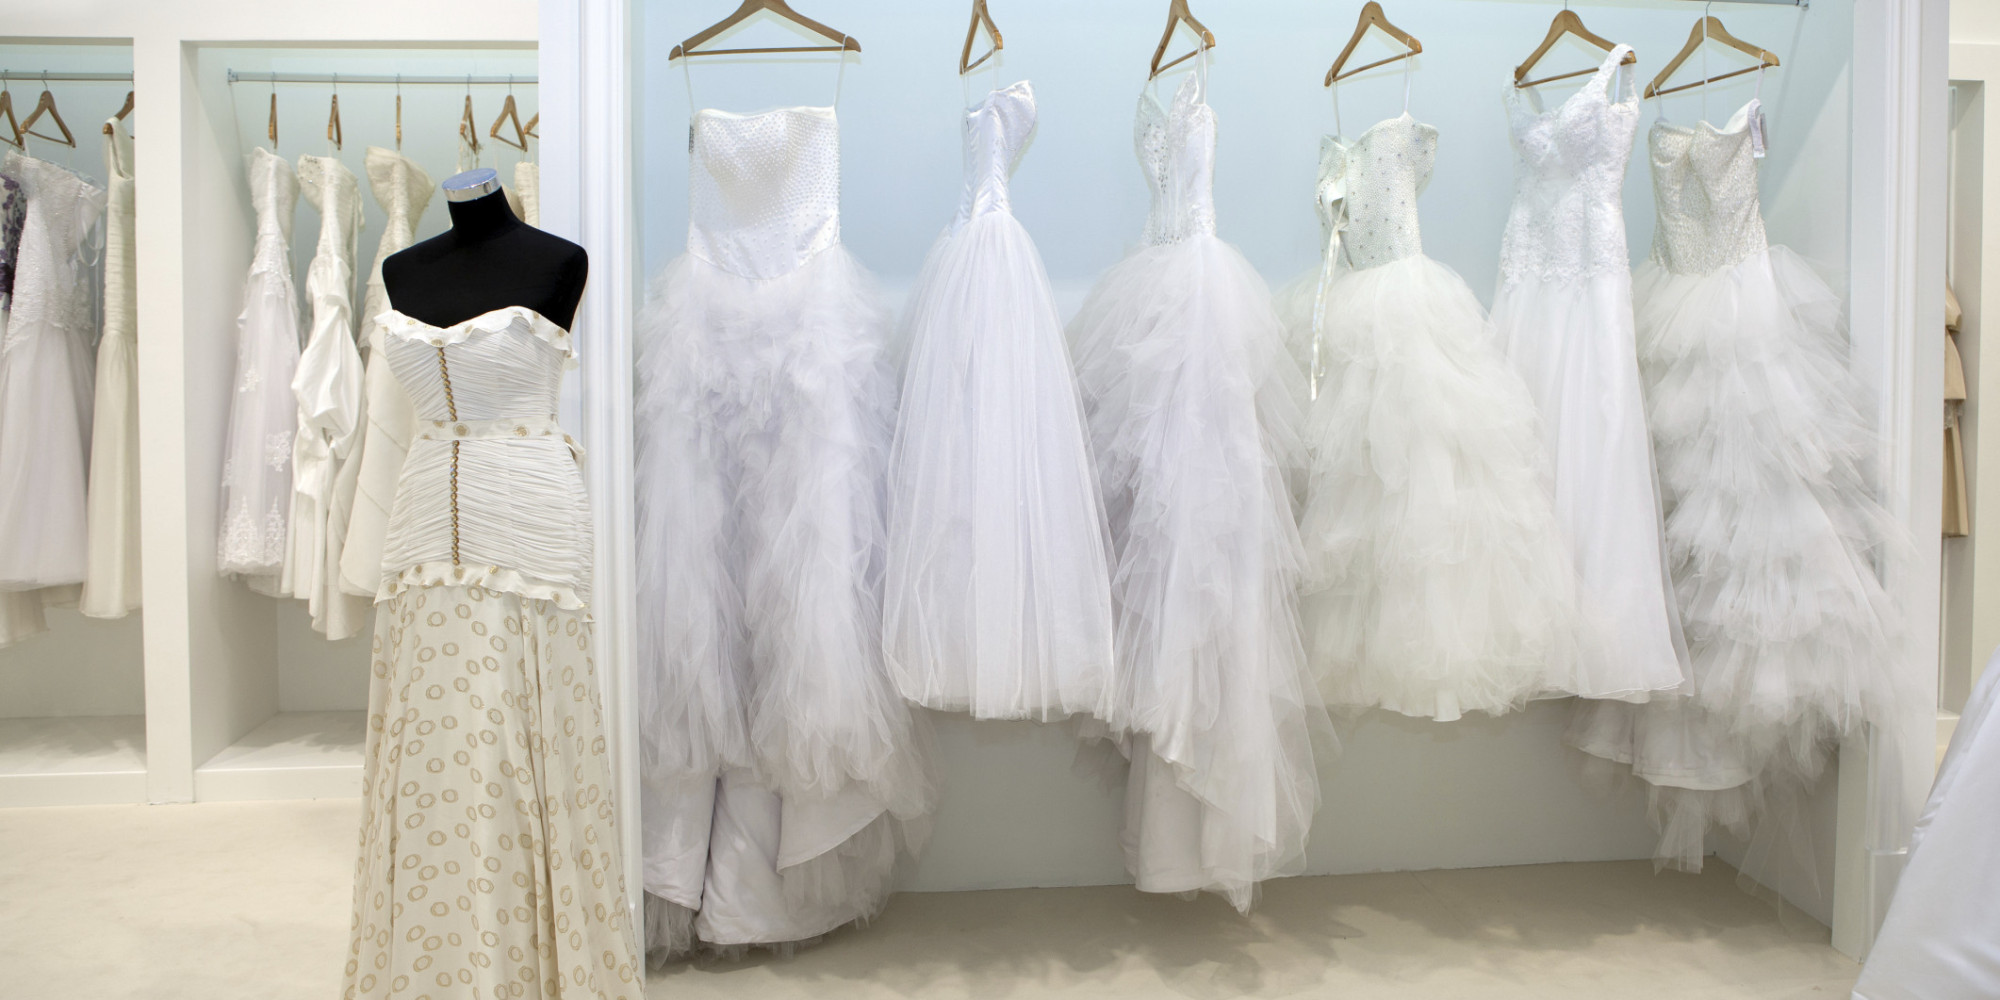 monte durham dress shopping tips n shop wedding dresses The 5 Biggest Mistakes Brides Make When Shopping For A Wedding Dress VIDEO HuffPost